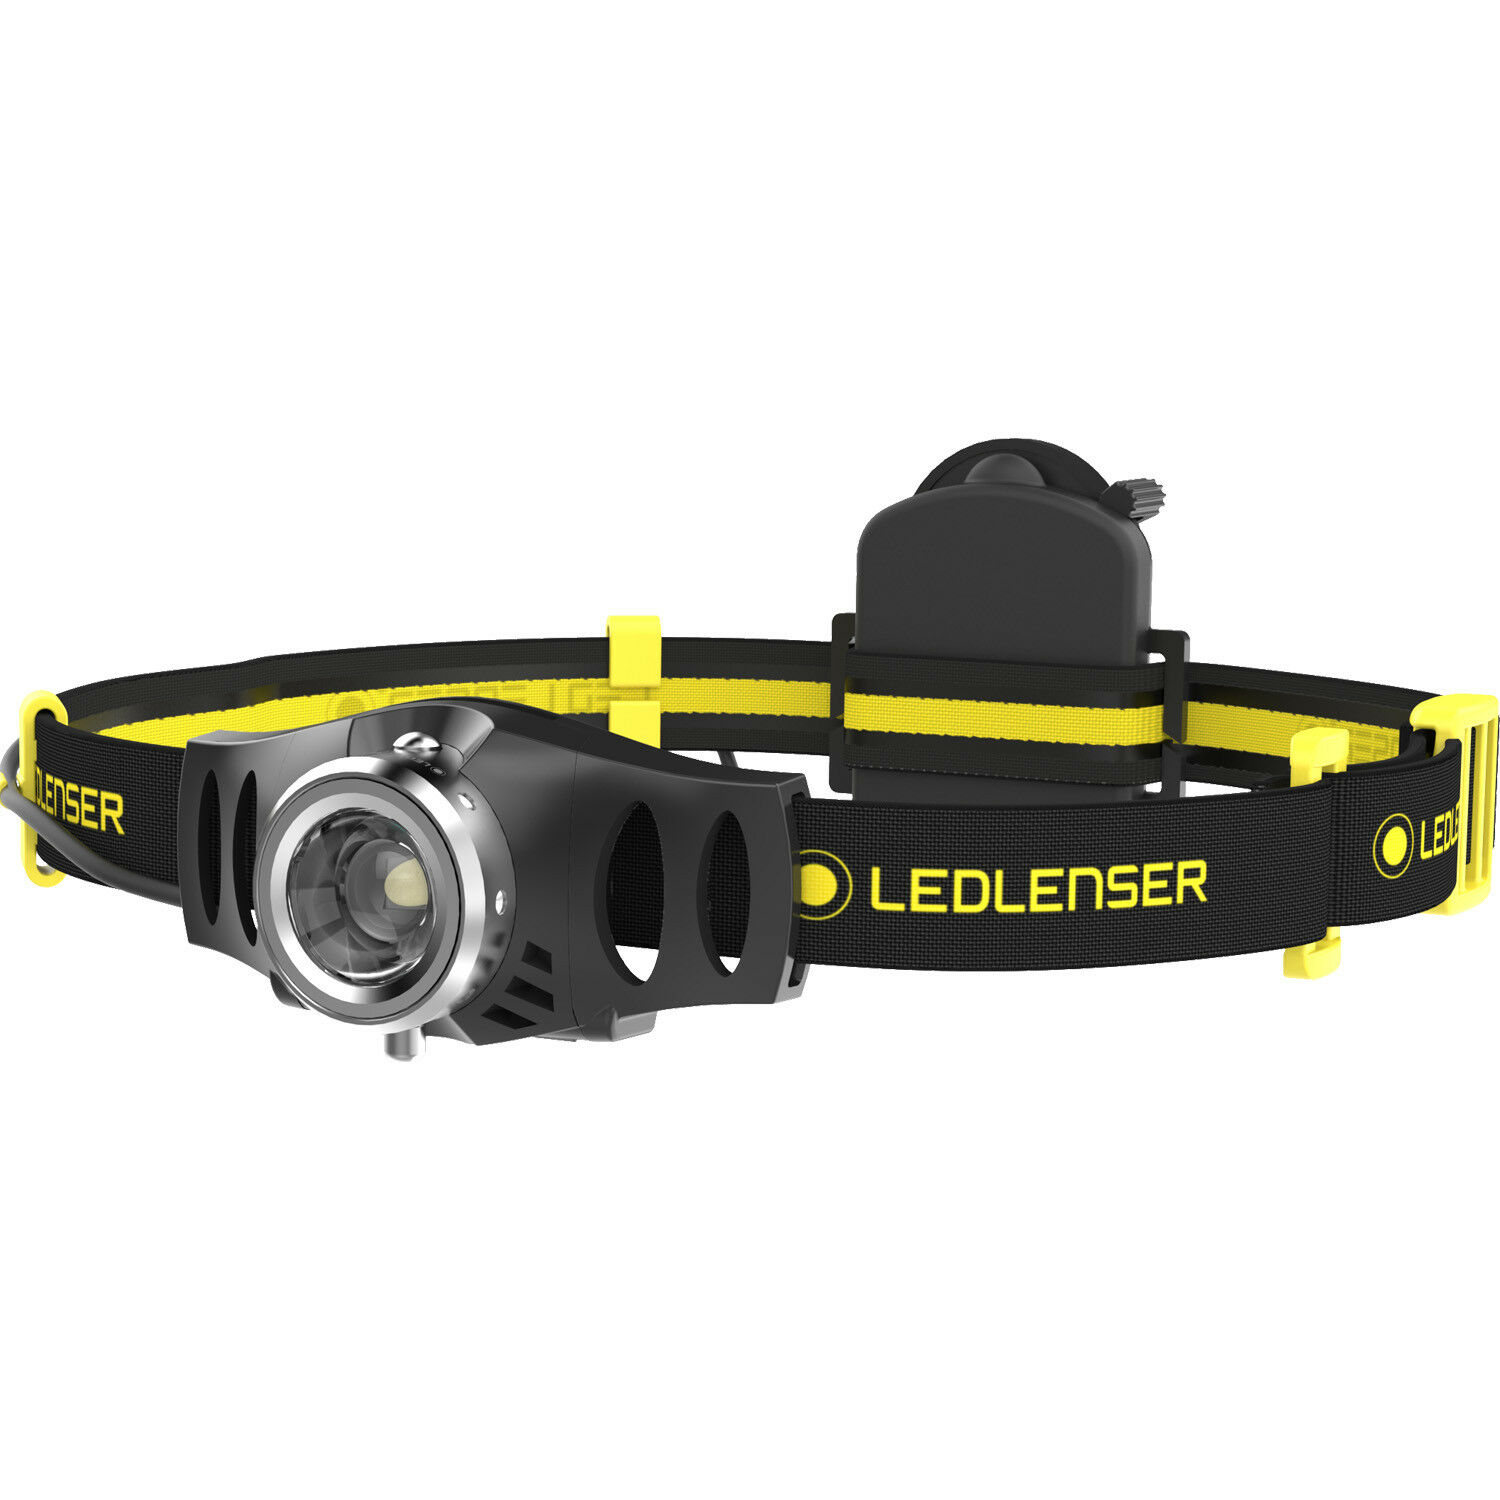 LED Lenser iH3 Head  Light Torch 120 Lumens  discount promotions